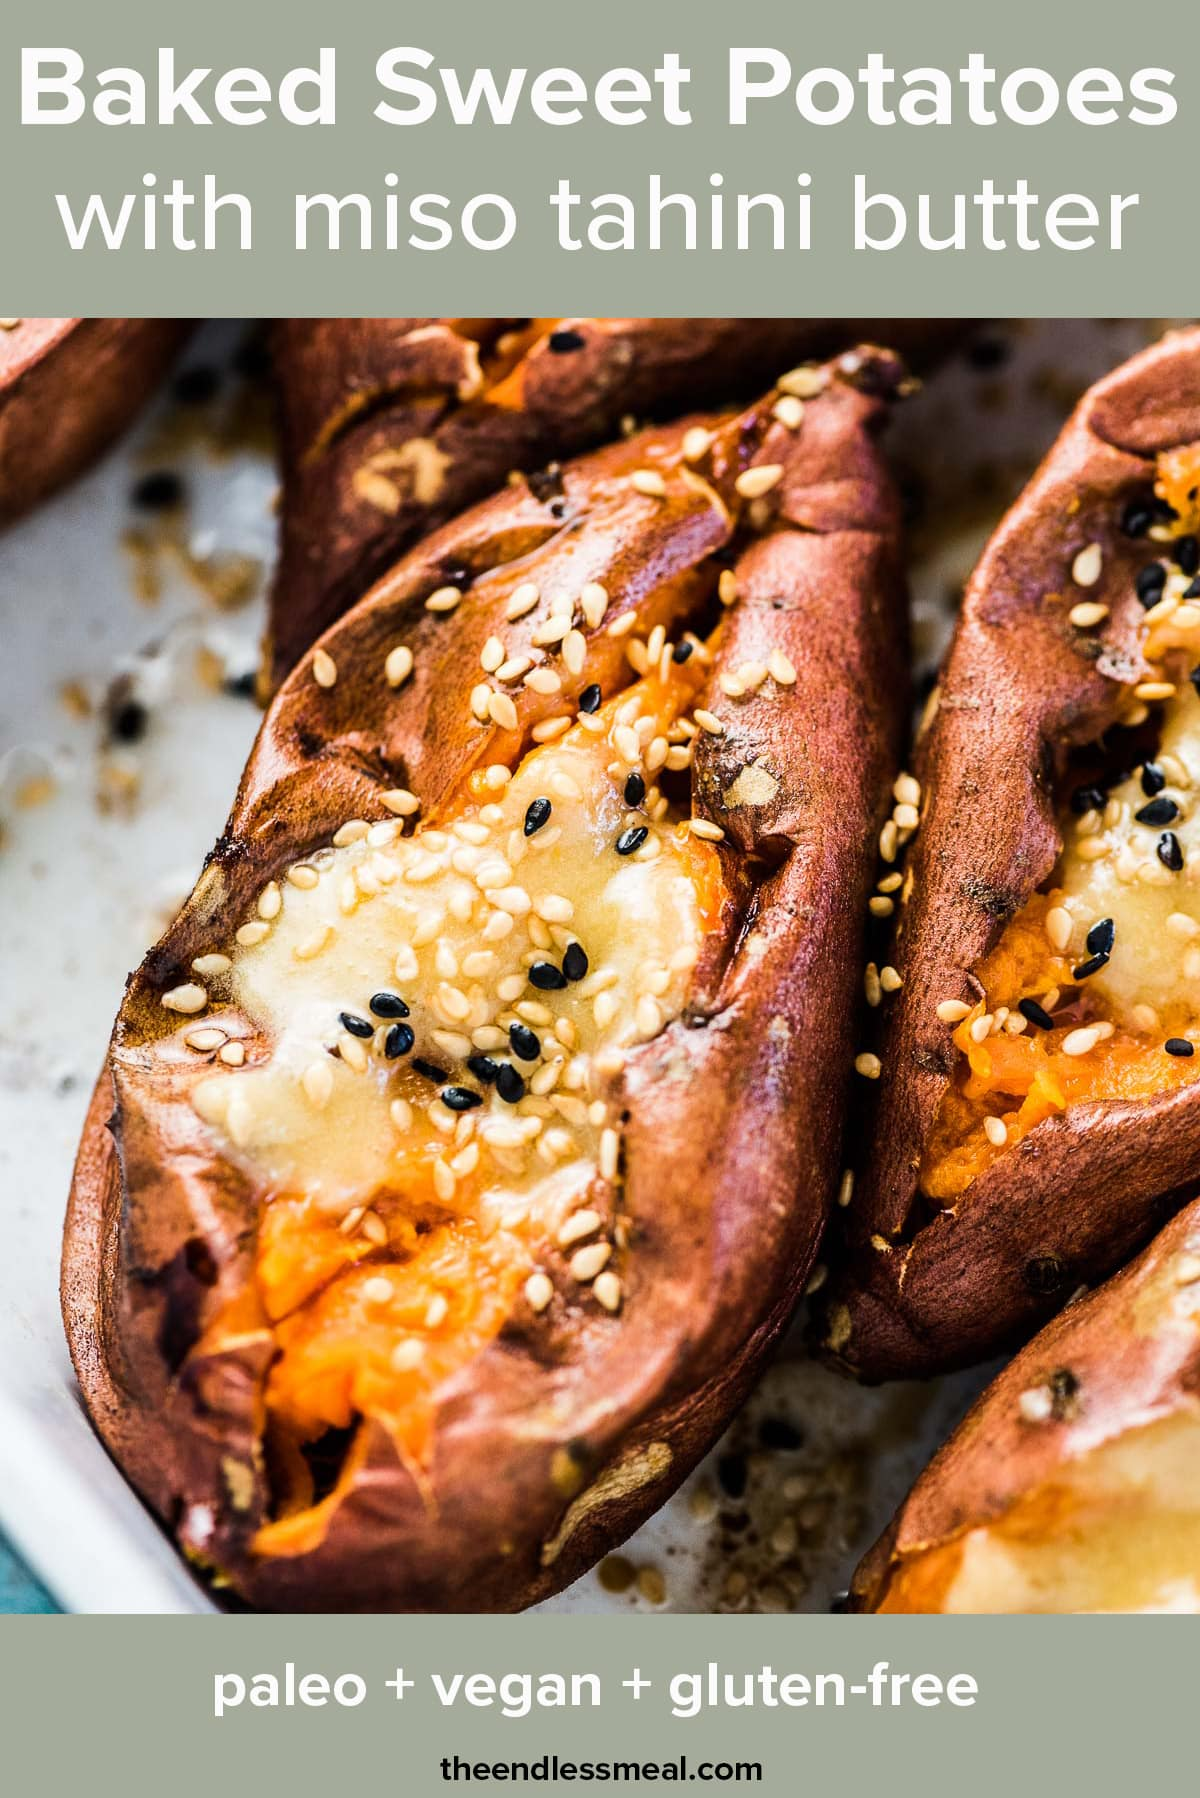 A close up of a baked sweet potato with tahini miso butter and the recipe title on top of the picture.